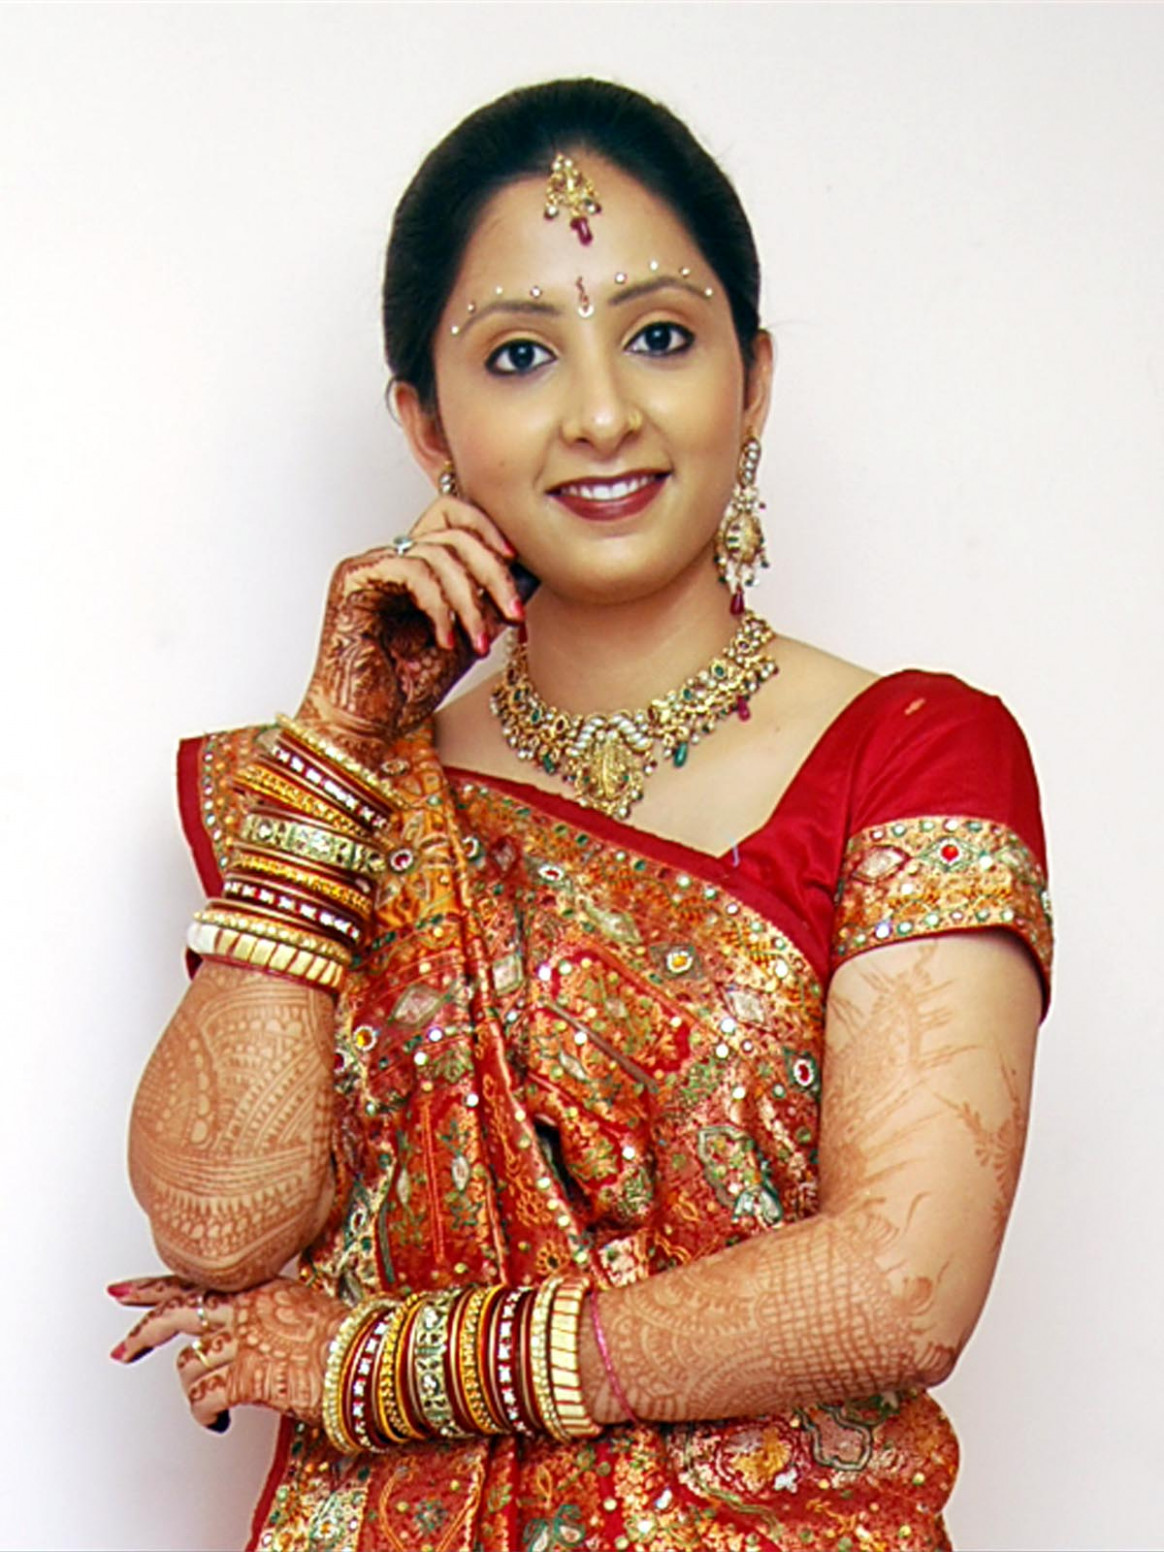 Wedding Dress Up Games For Indian Brides - Flower Girl Dresses - indian bridal games for girl